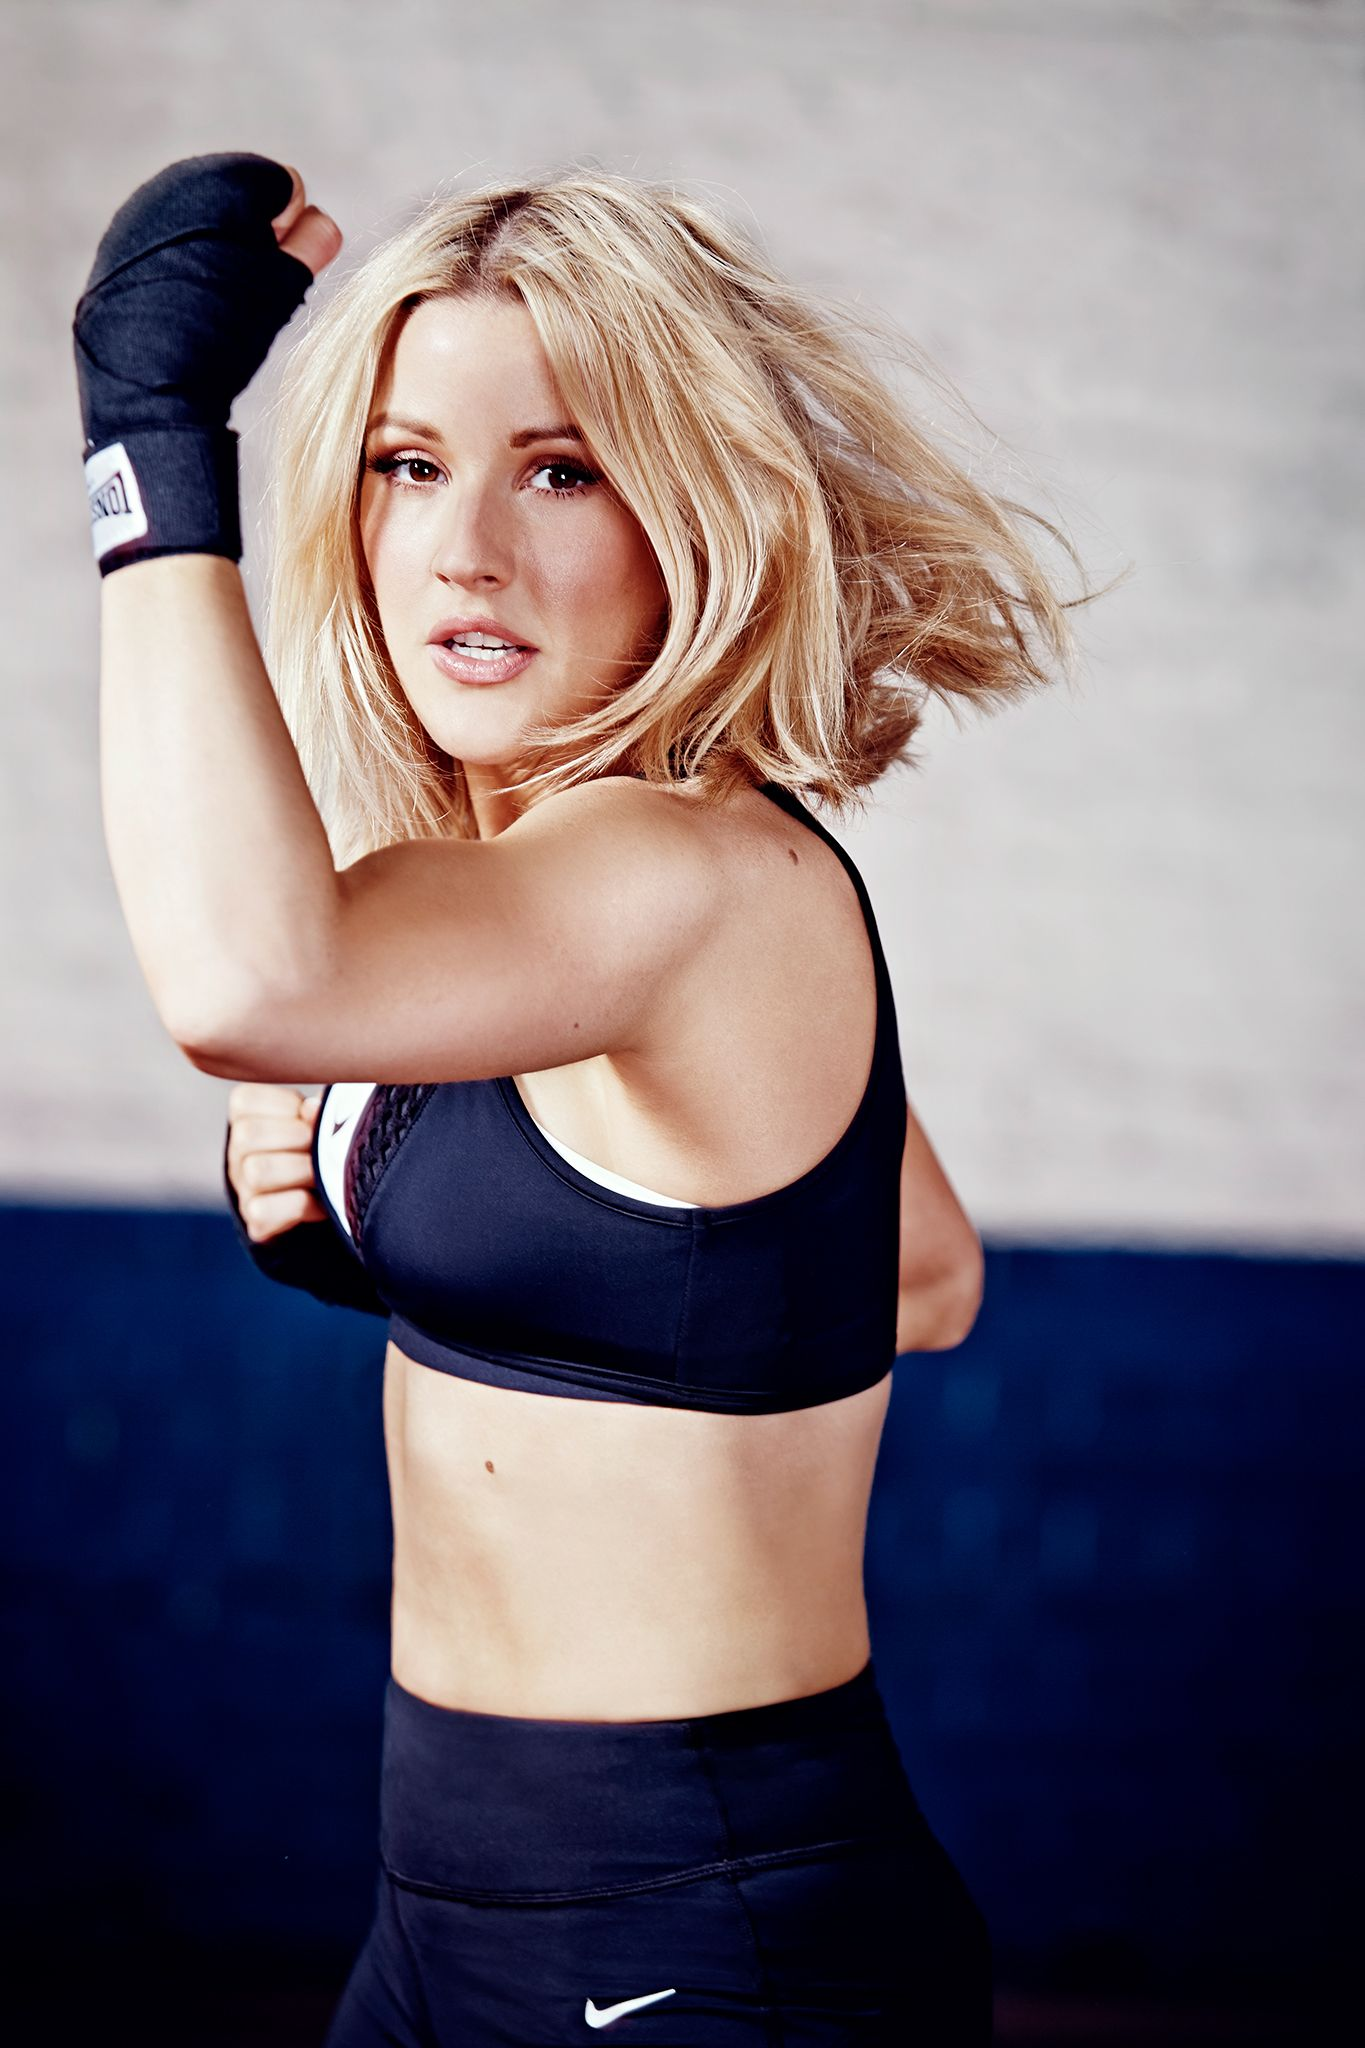 Fappening Ellie Goulding naked (77 photos), Topless, Cleavage, Boobs, in bikini 2017